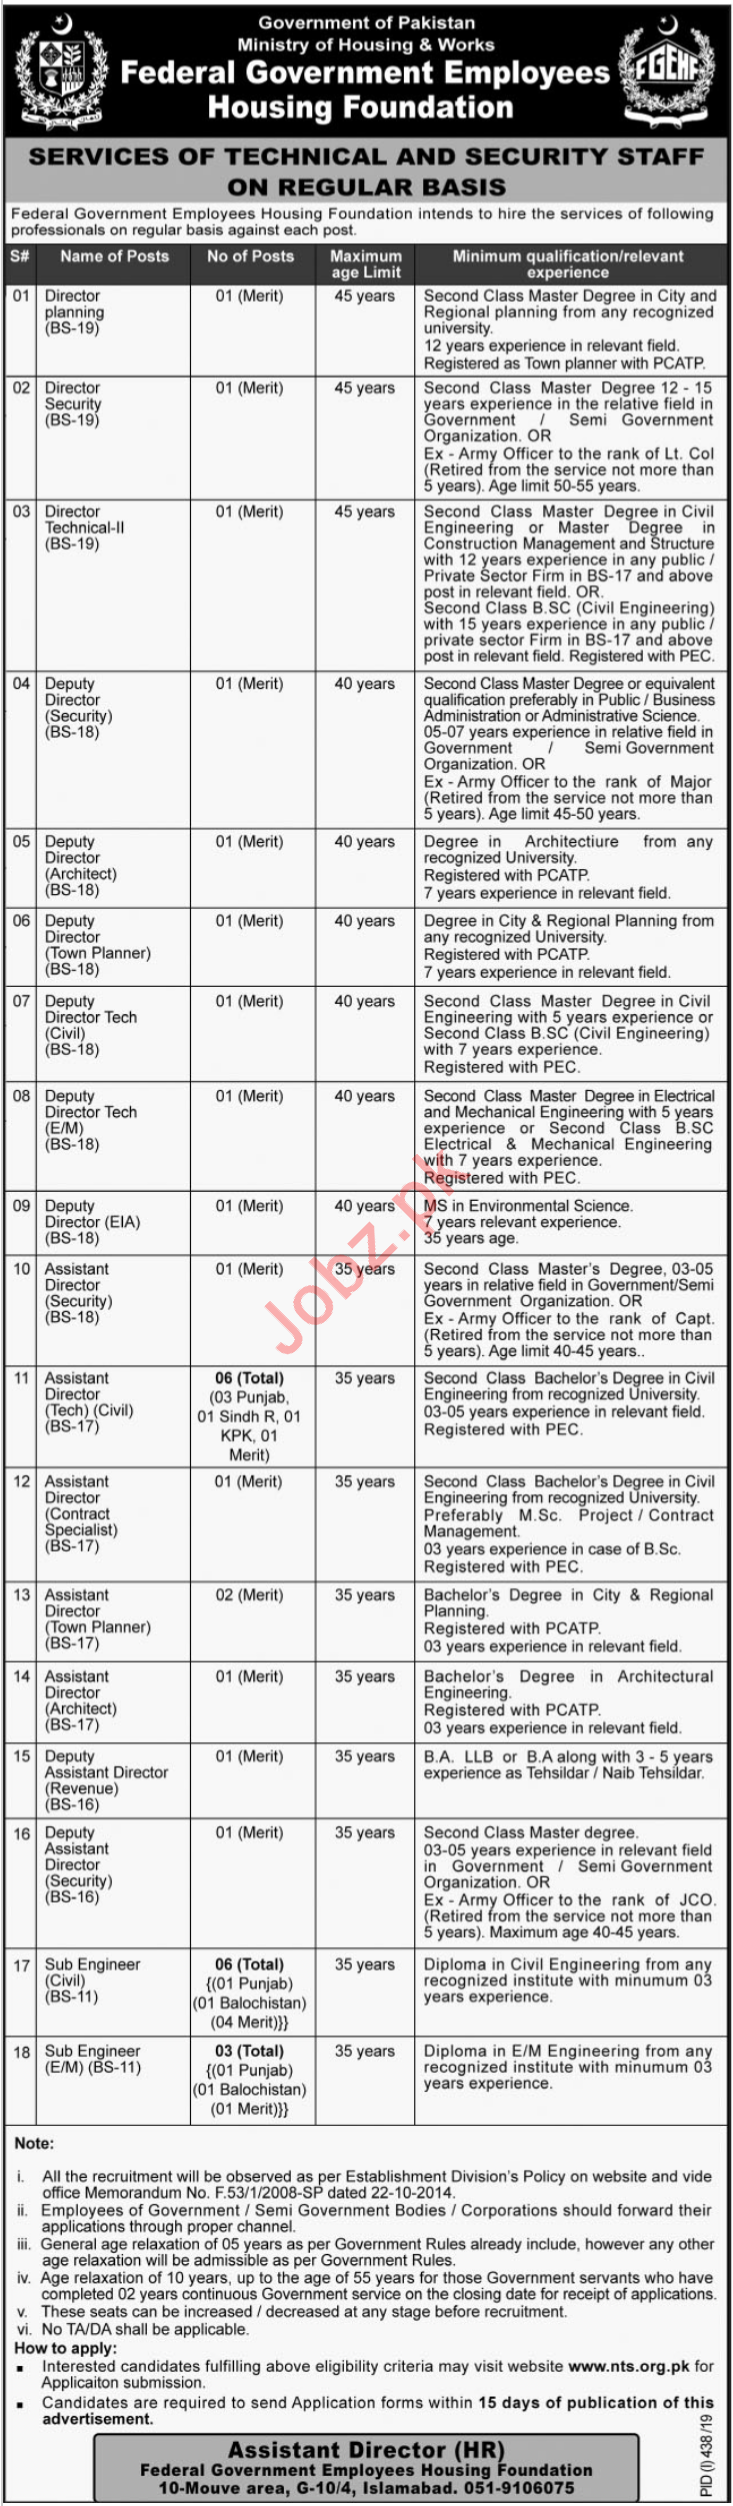 Federal Government Employees Housing Foundation Jobs via NTS